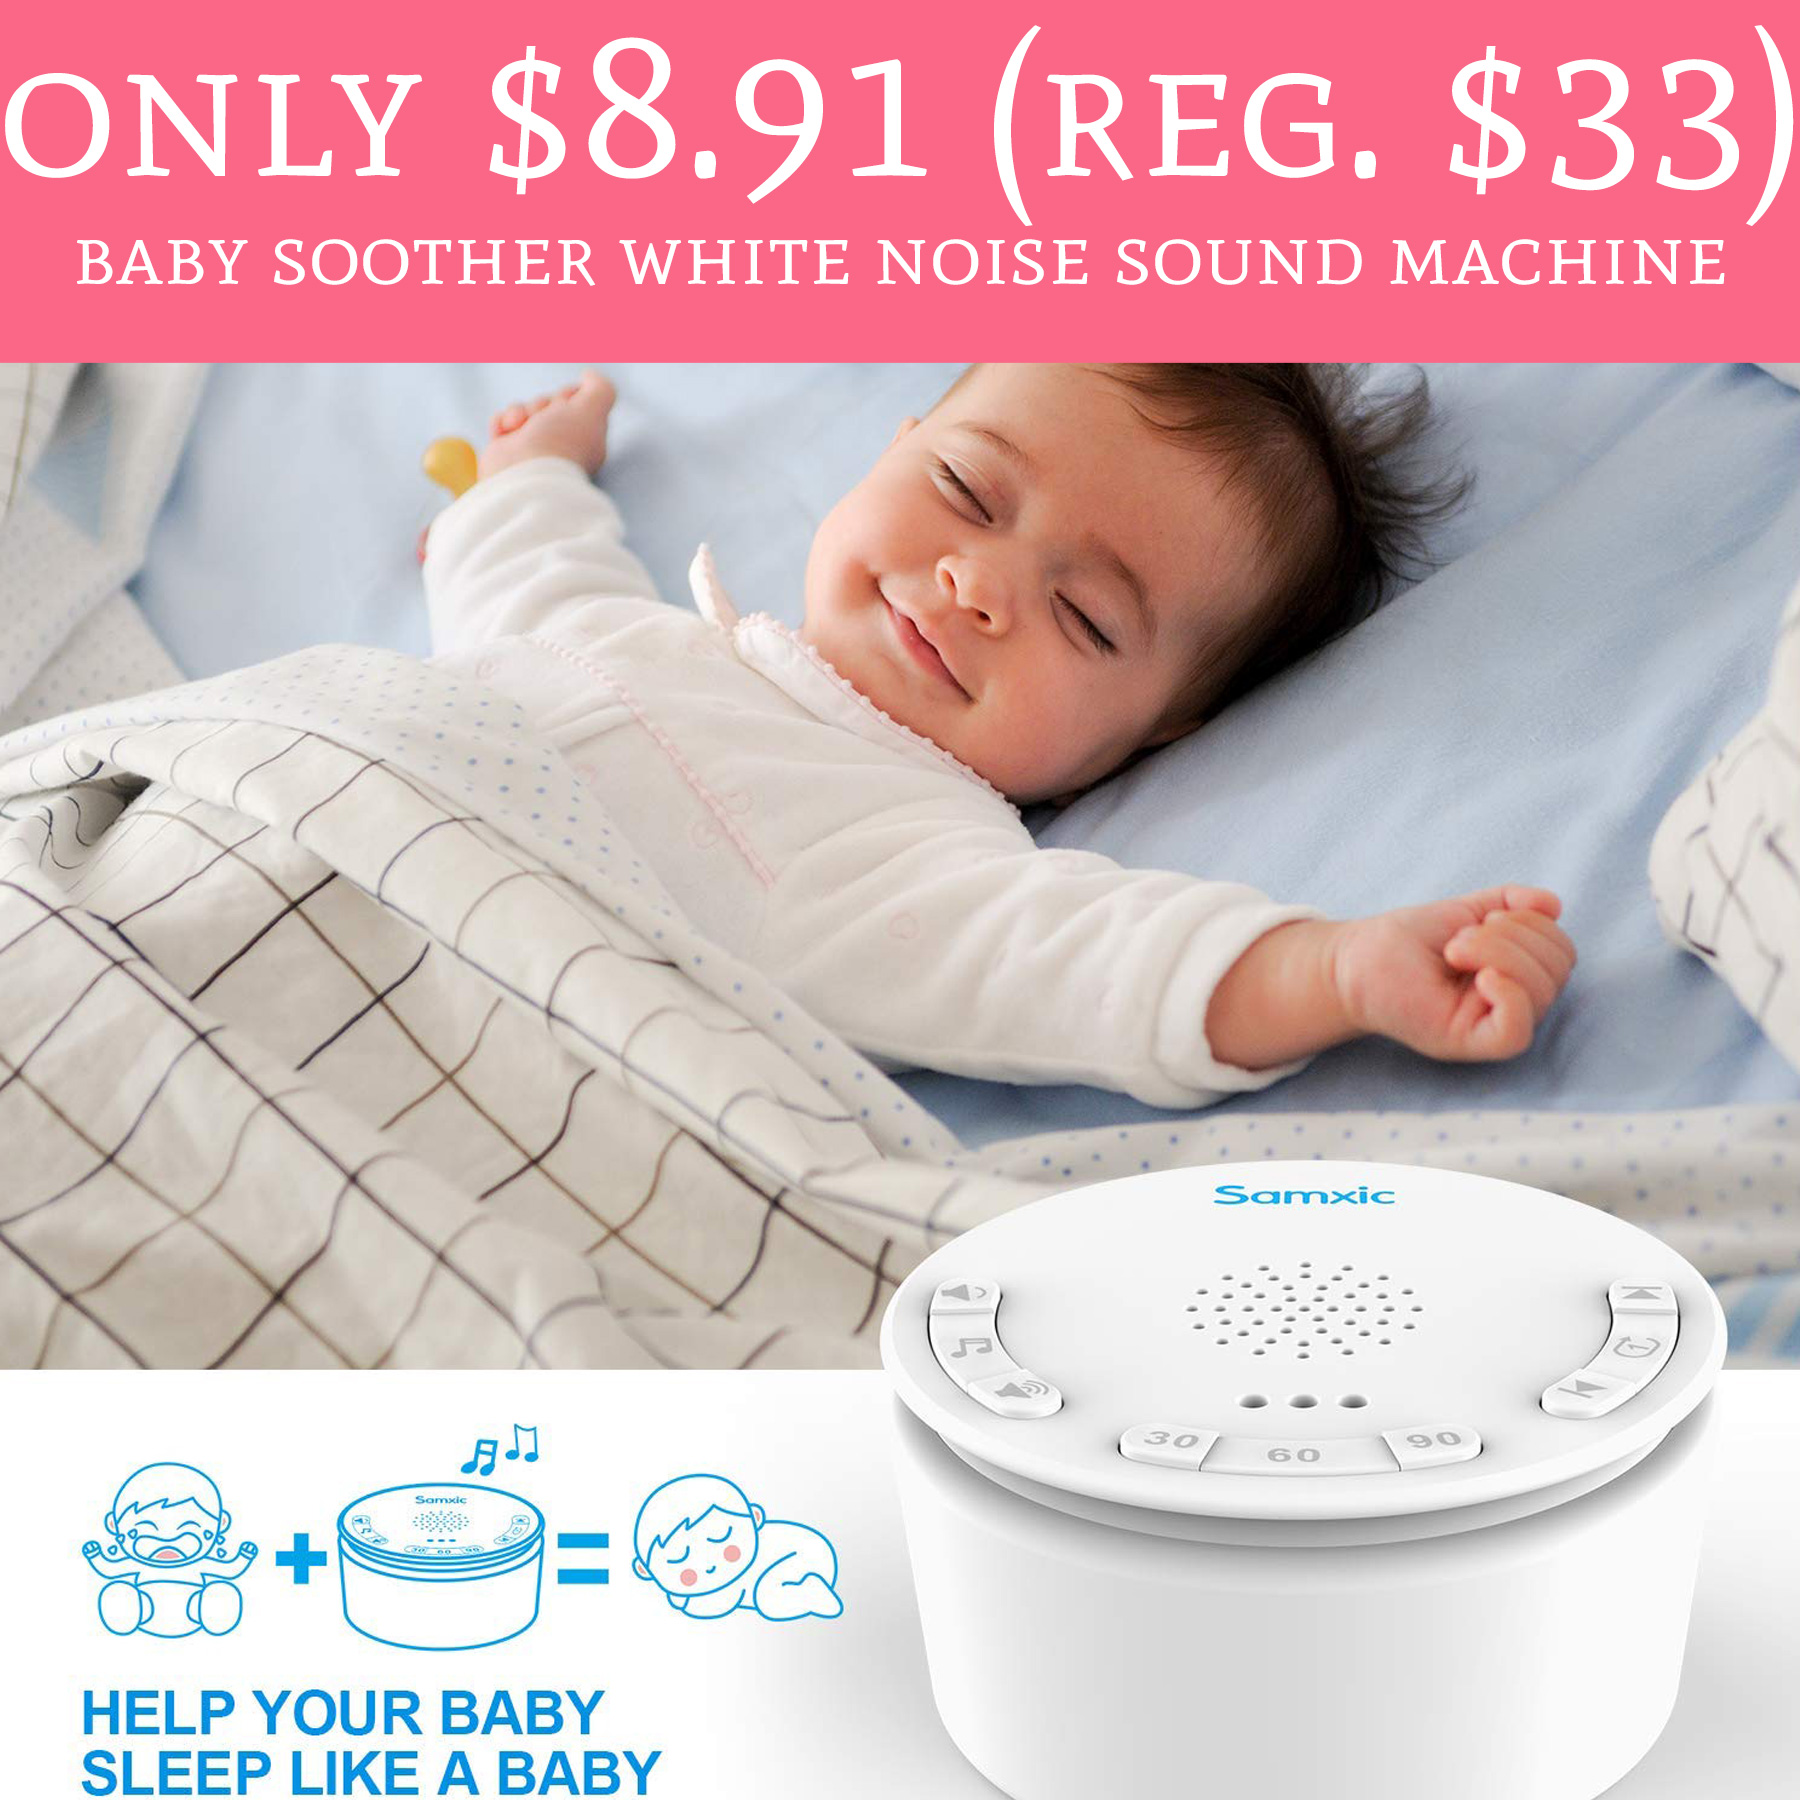 White Noise Baby: Only $8.91 (Reg. $33) Baby Soother White Noise Sound